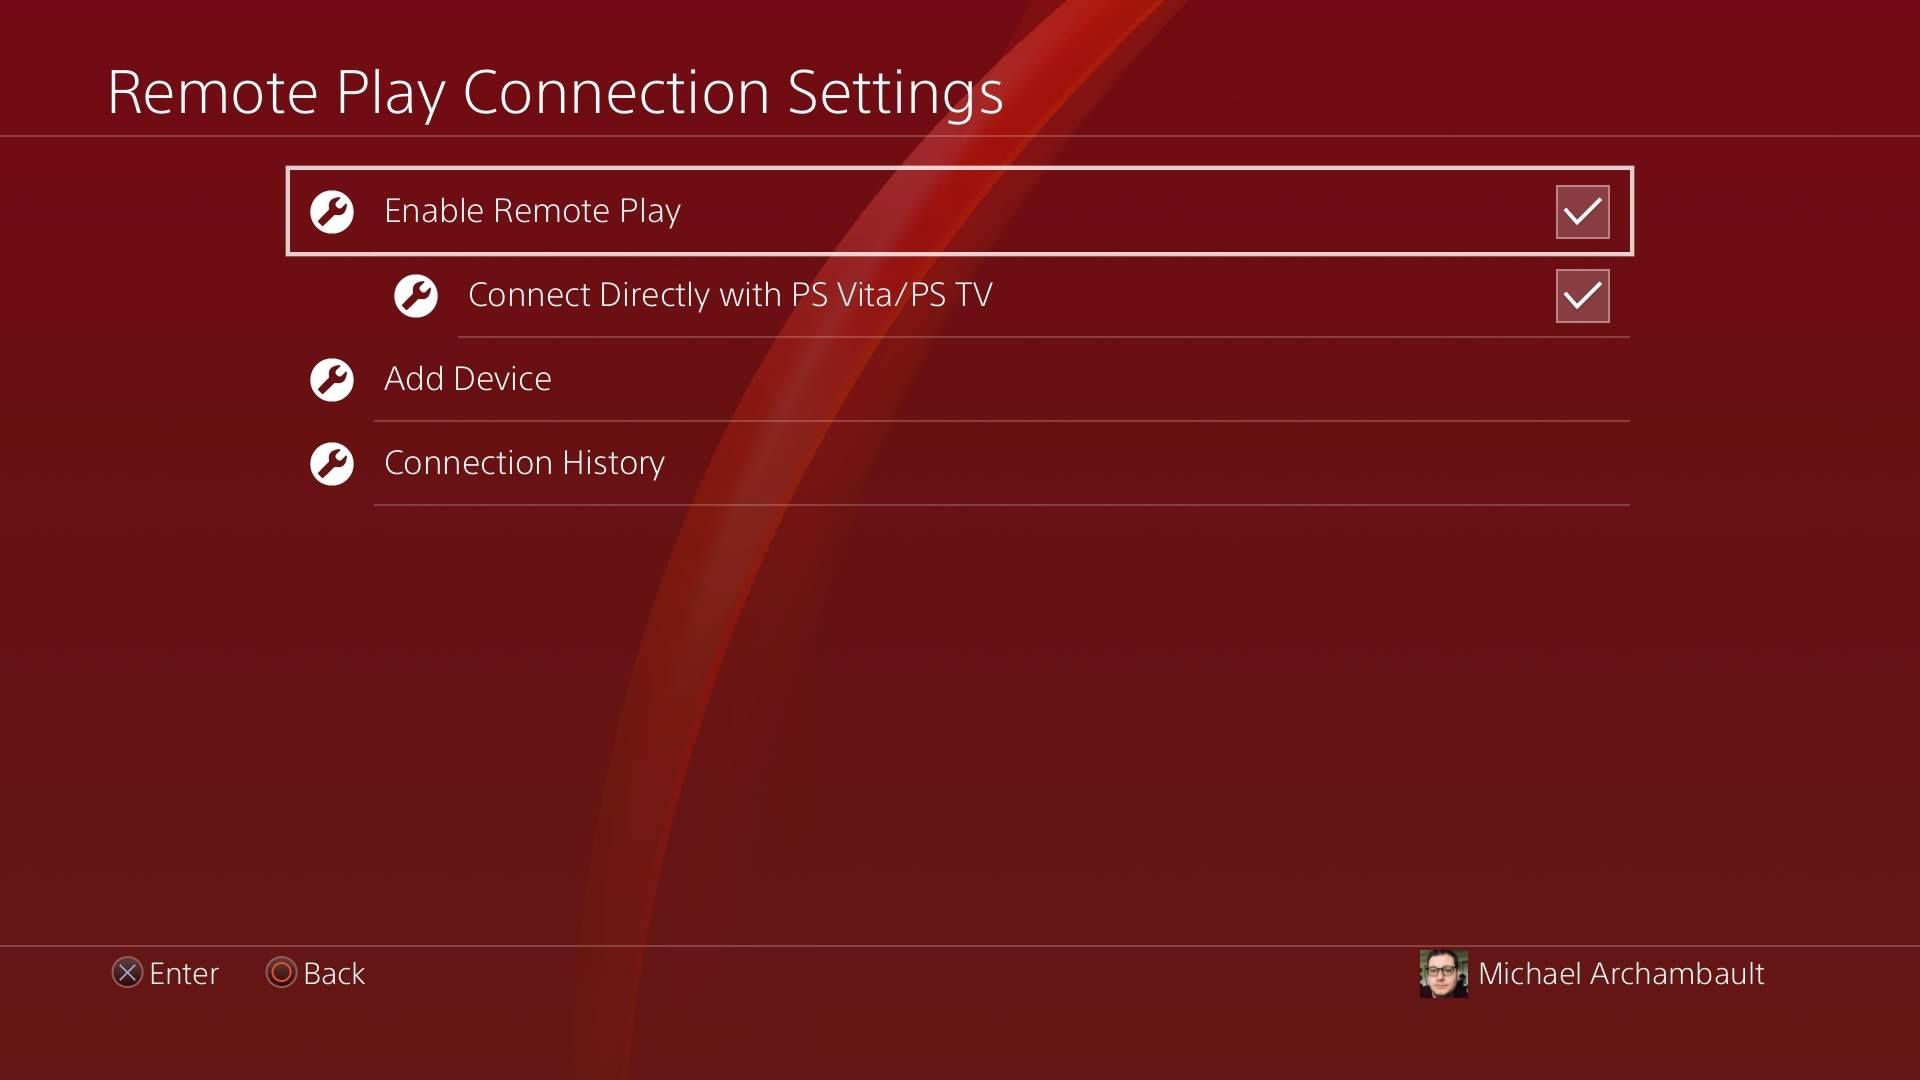 ps3 remote play apk 2016